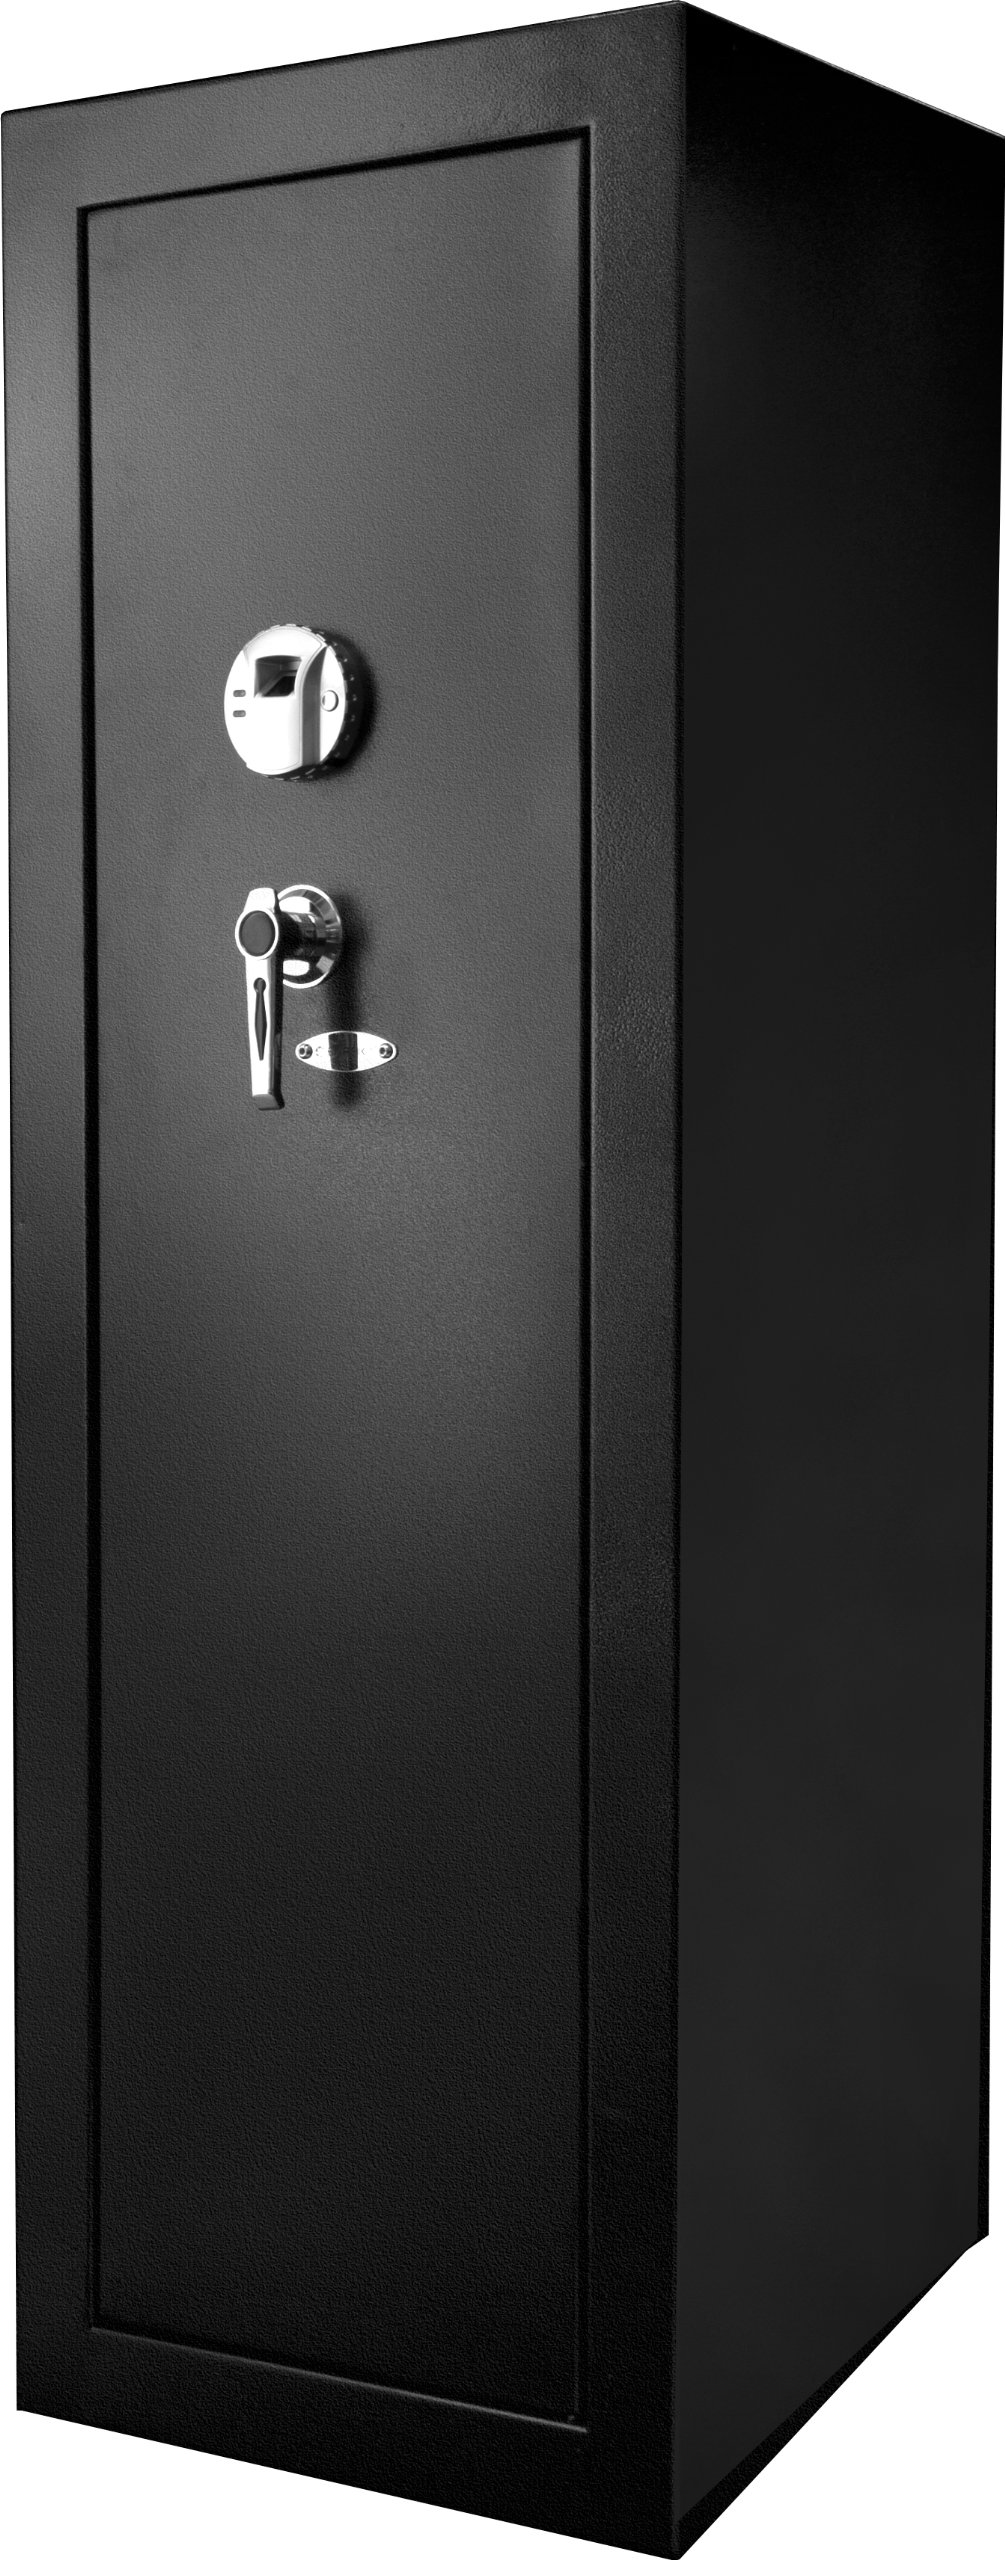 BARSKA AX11780 Quick Access Large Biometric Fingerprint 16 Position Rifle Security Safe 9.34 Cubic Ft by BARSKA